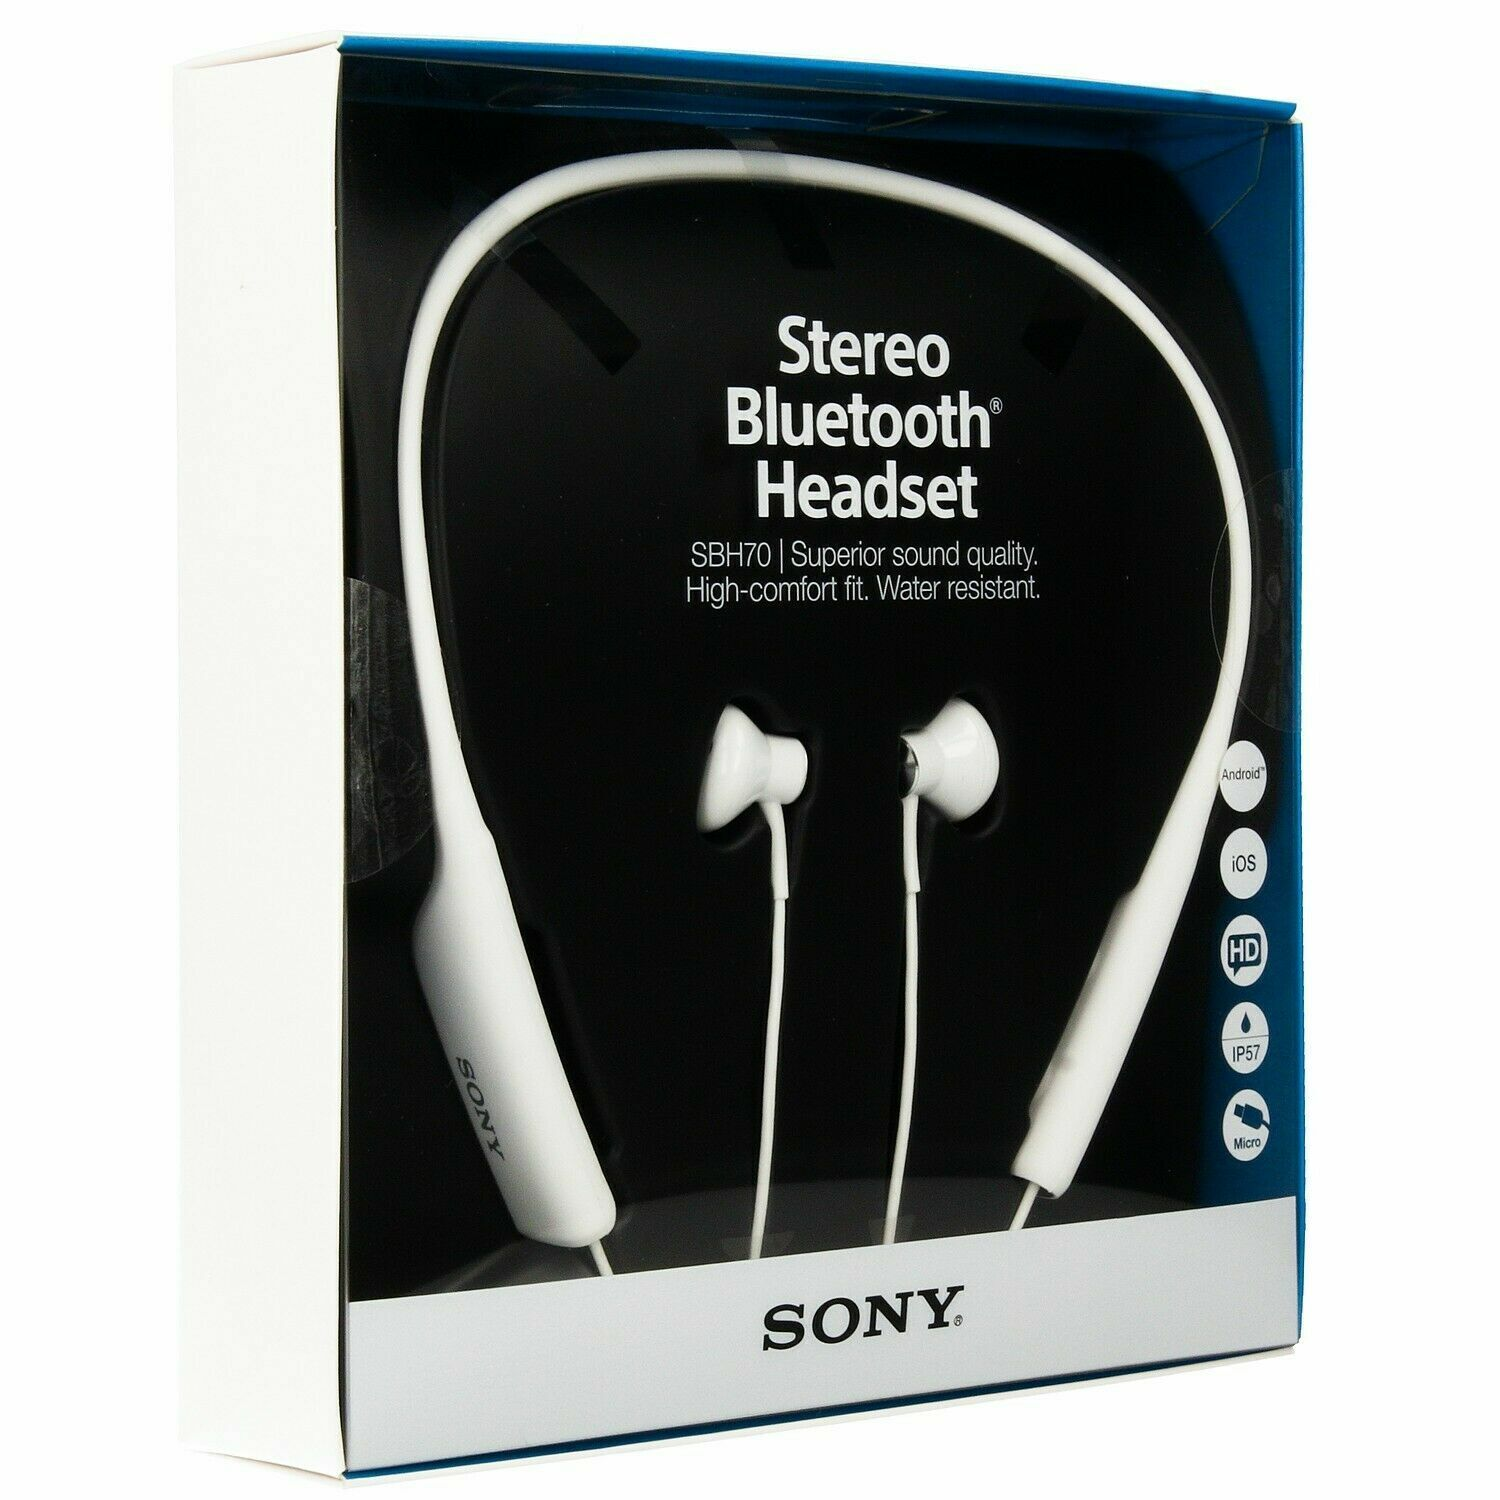 Sony Bluetooth Headset - SBH70 - Android iOS HD IP57 Superior Sound Quality